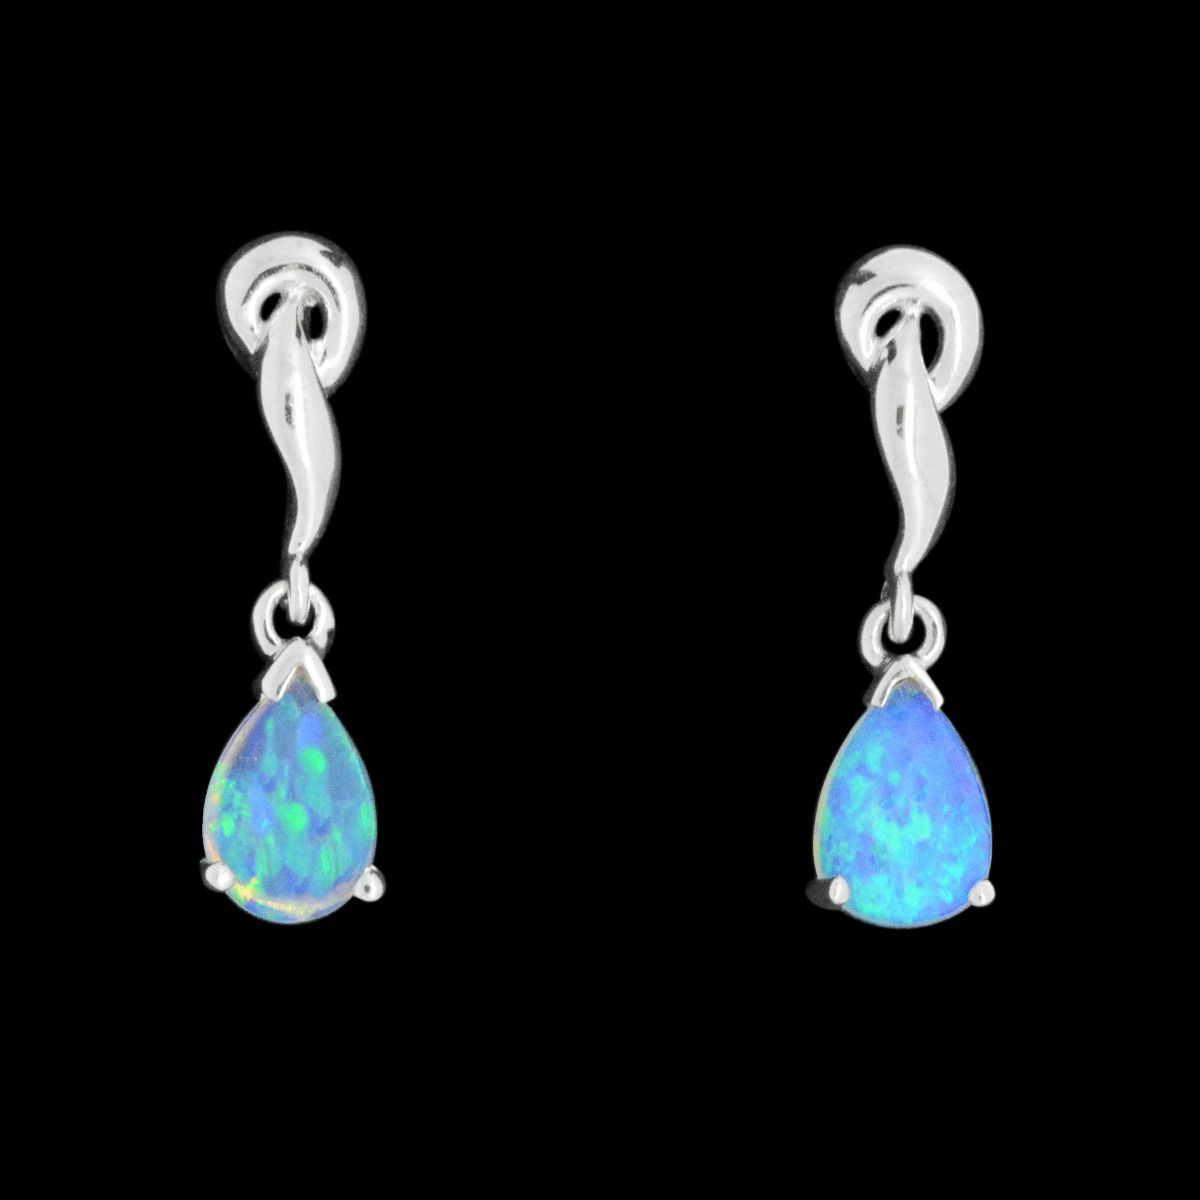 Solid Crystal Opal Earrings Set in White Gold